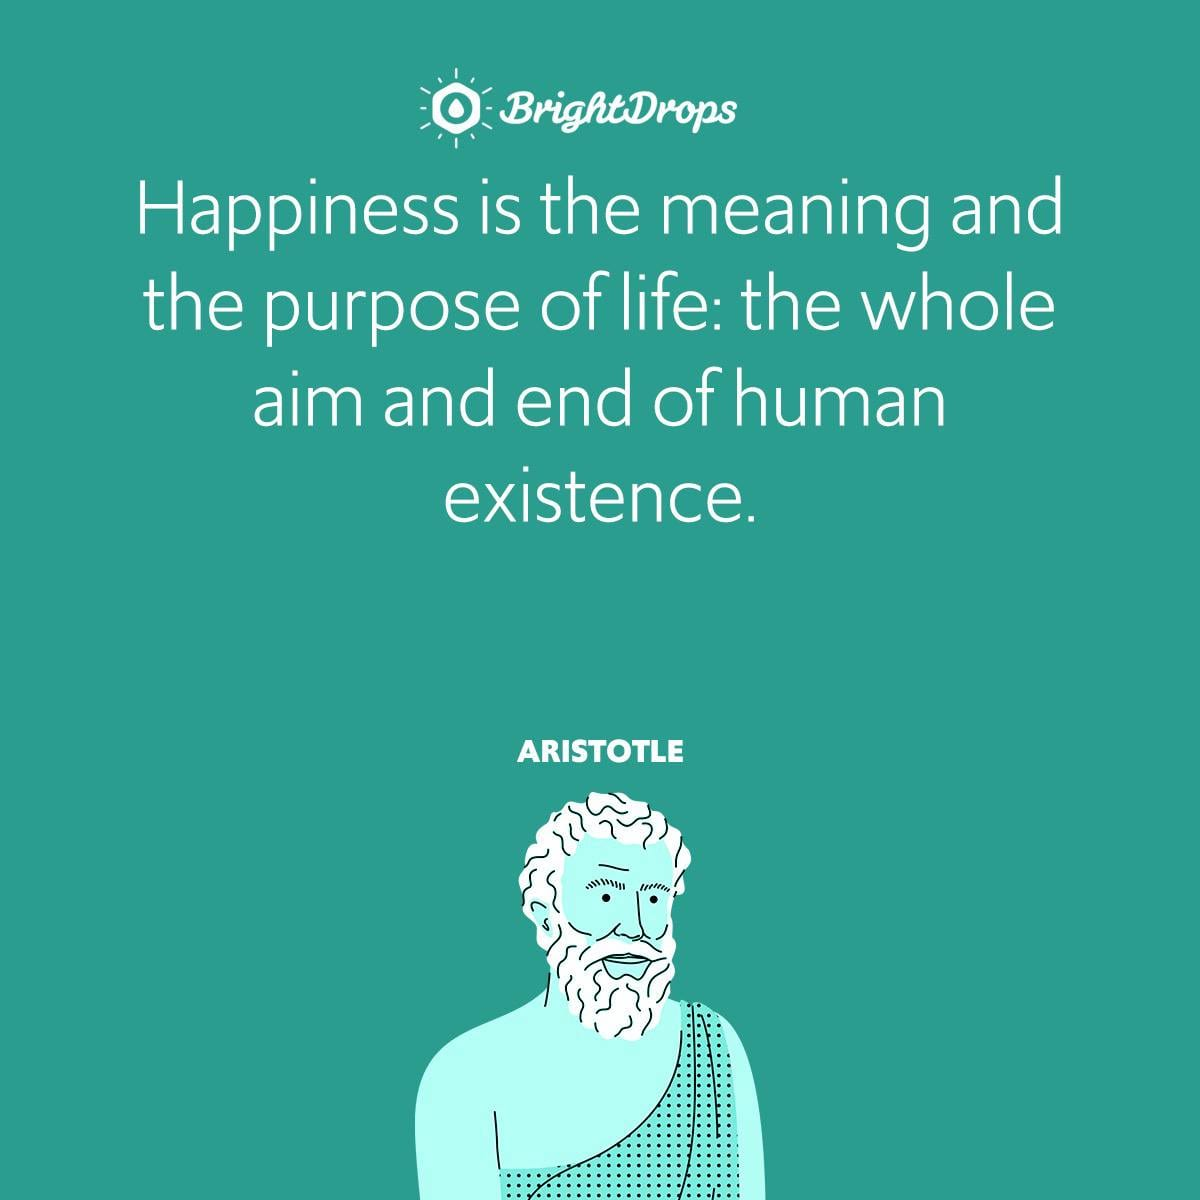 Happiness is the meaning and the purpose of life: the whole aim and end of human existence.